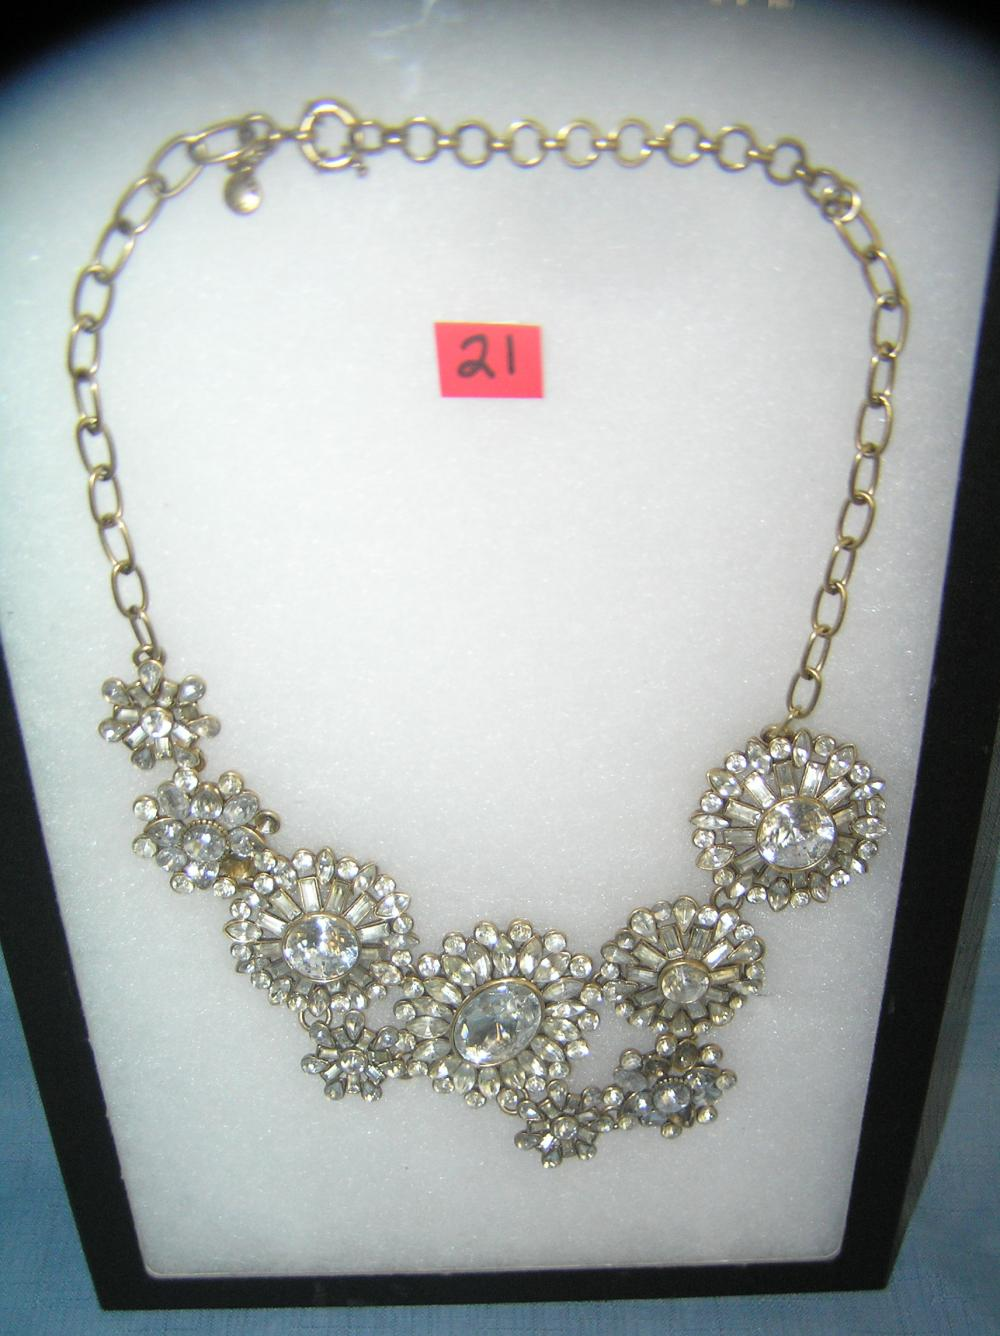 VINTAGE J. CREW COSTUME JEWELRY NECKLACE